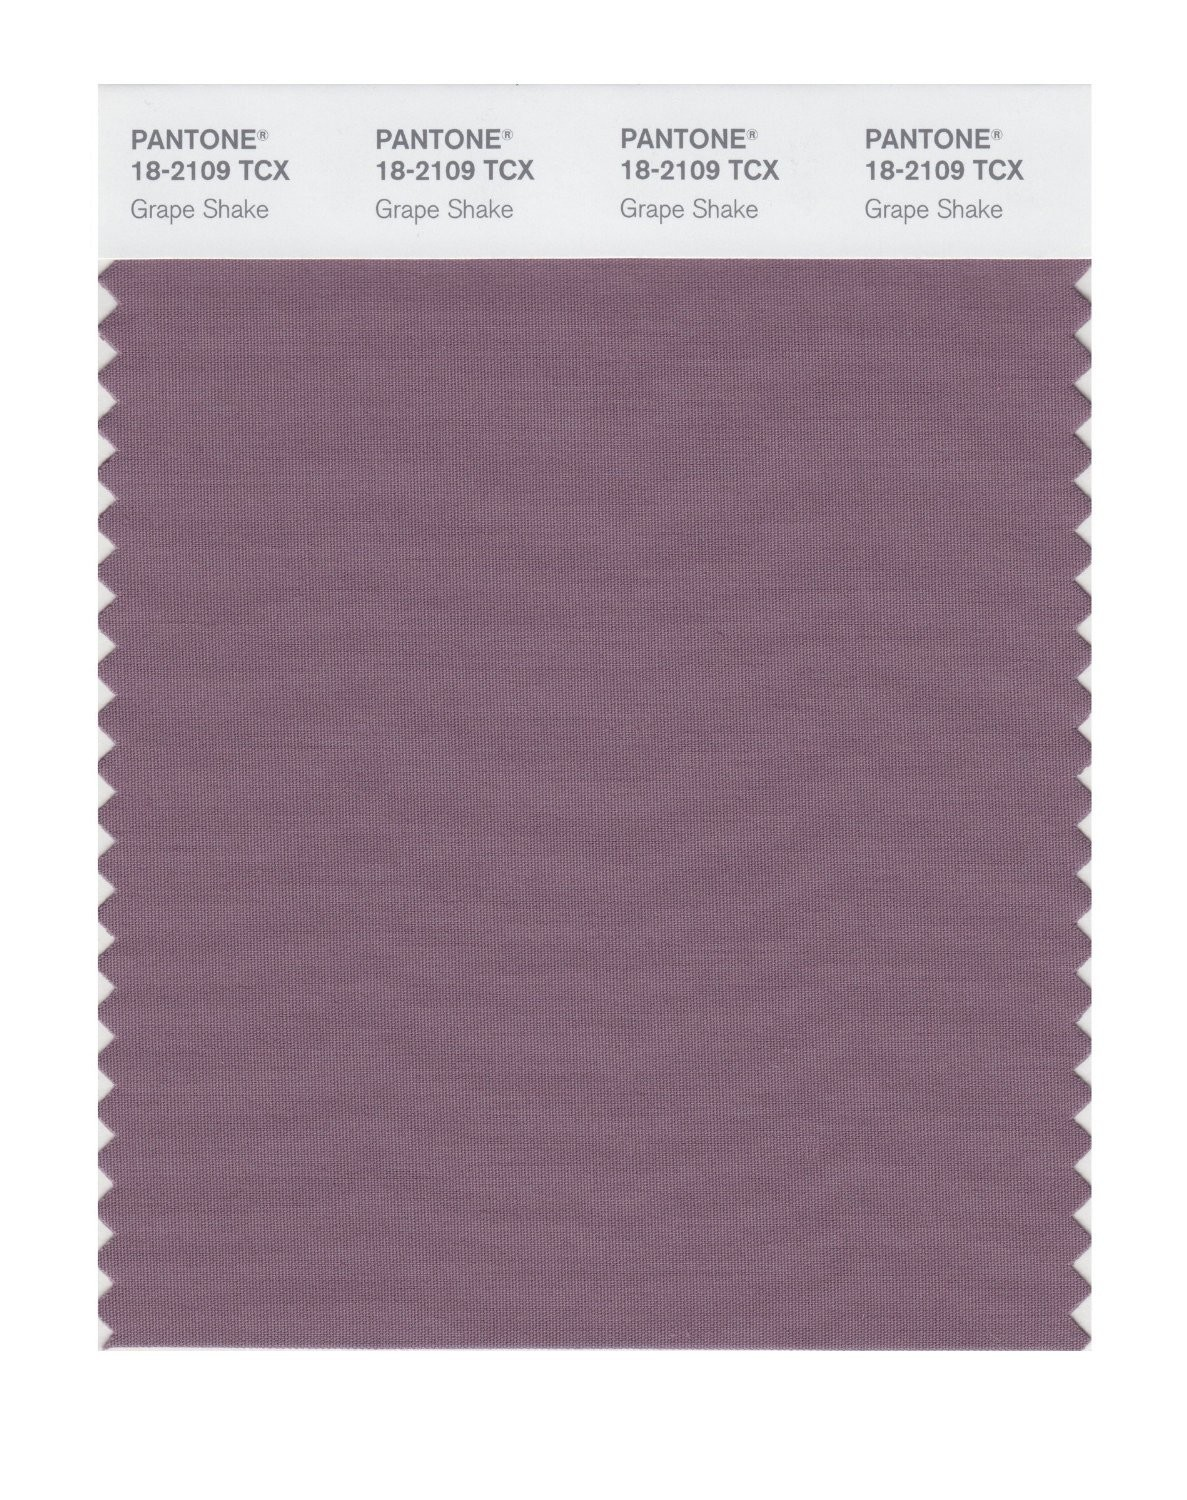 Pantone 18-2109 TCX Swatch Card Grape Shake